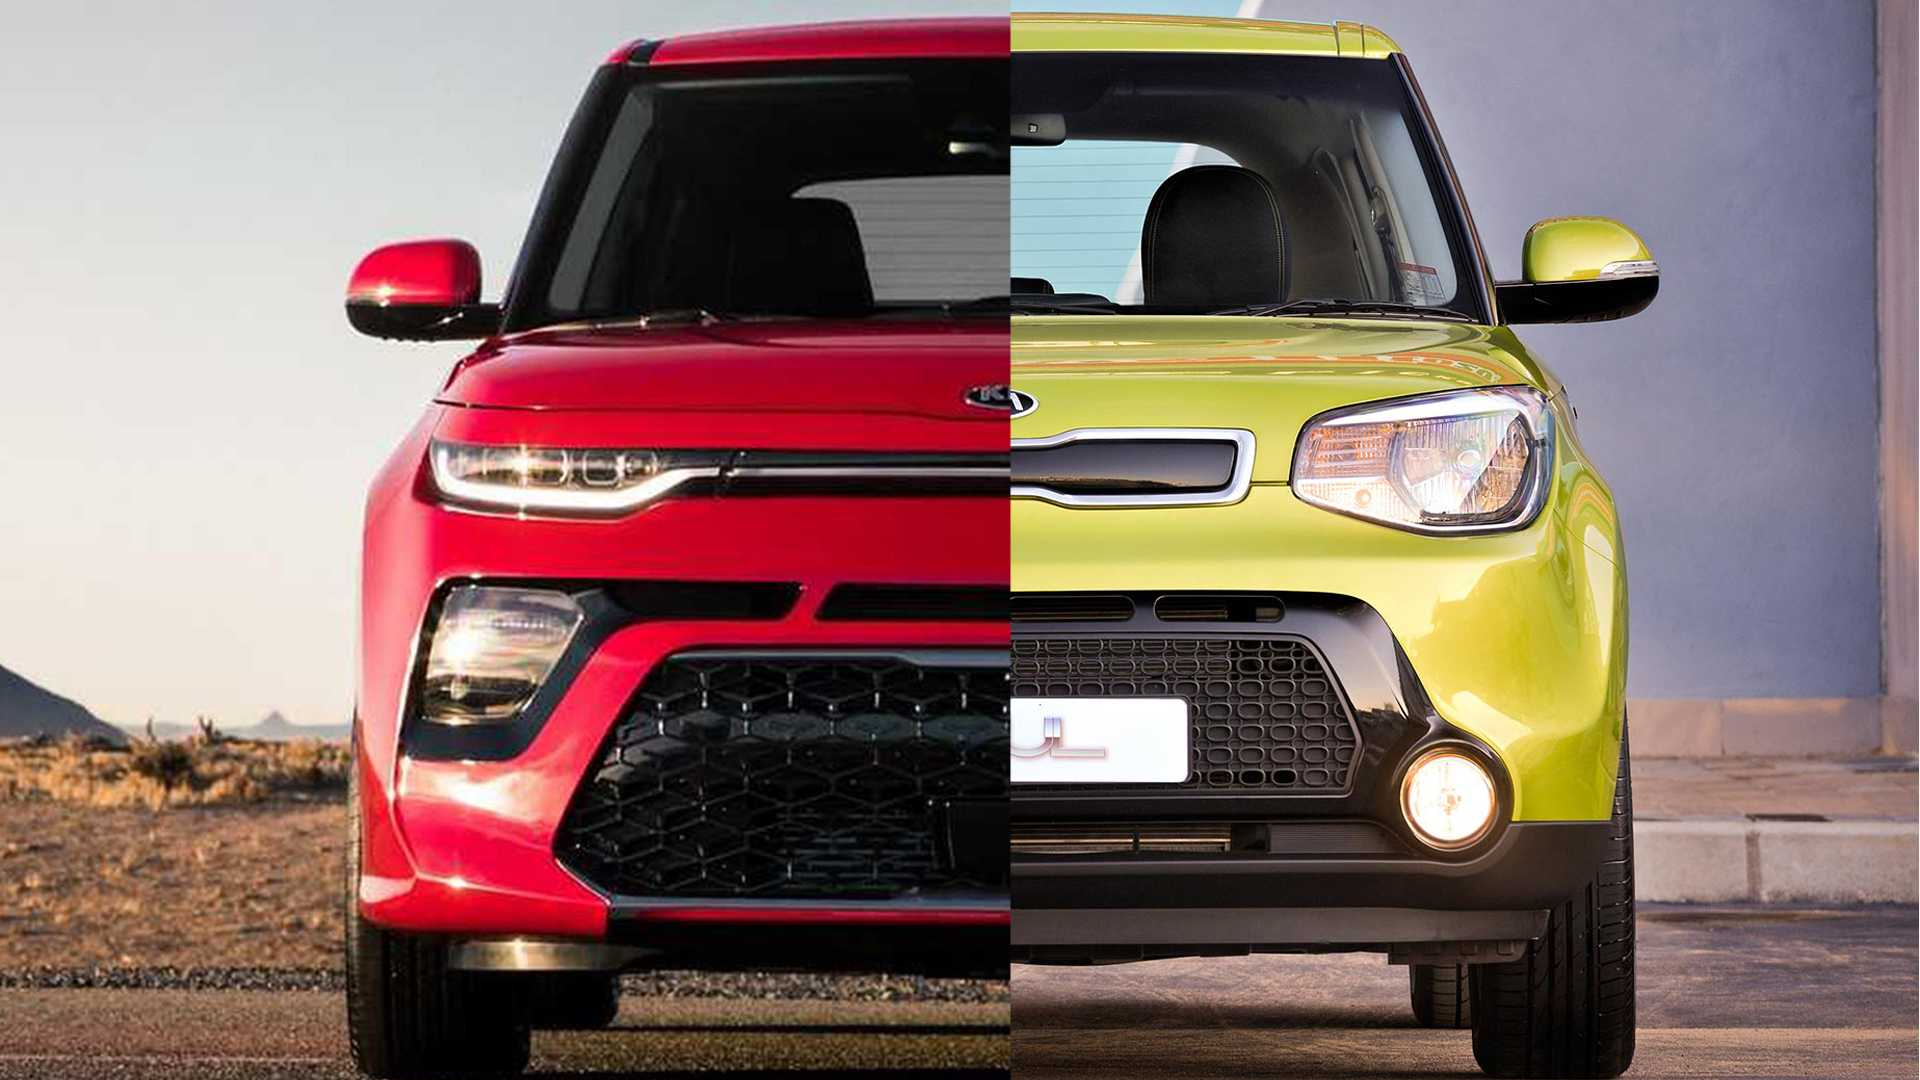 77 New 2020 Kia Soul Horsepower Exterior and Interior with 2020 Kia Soul Horsepower